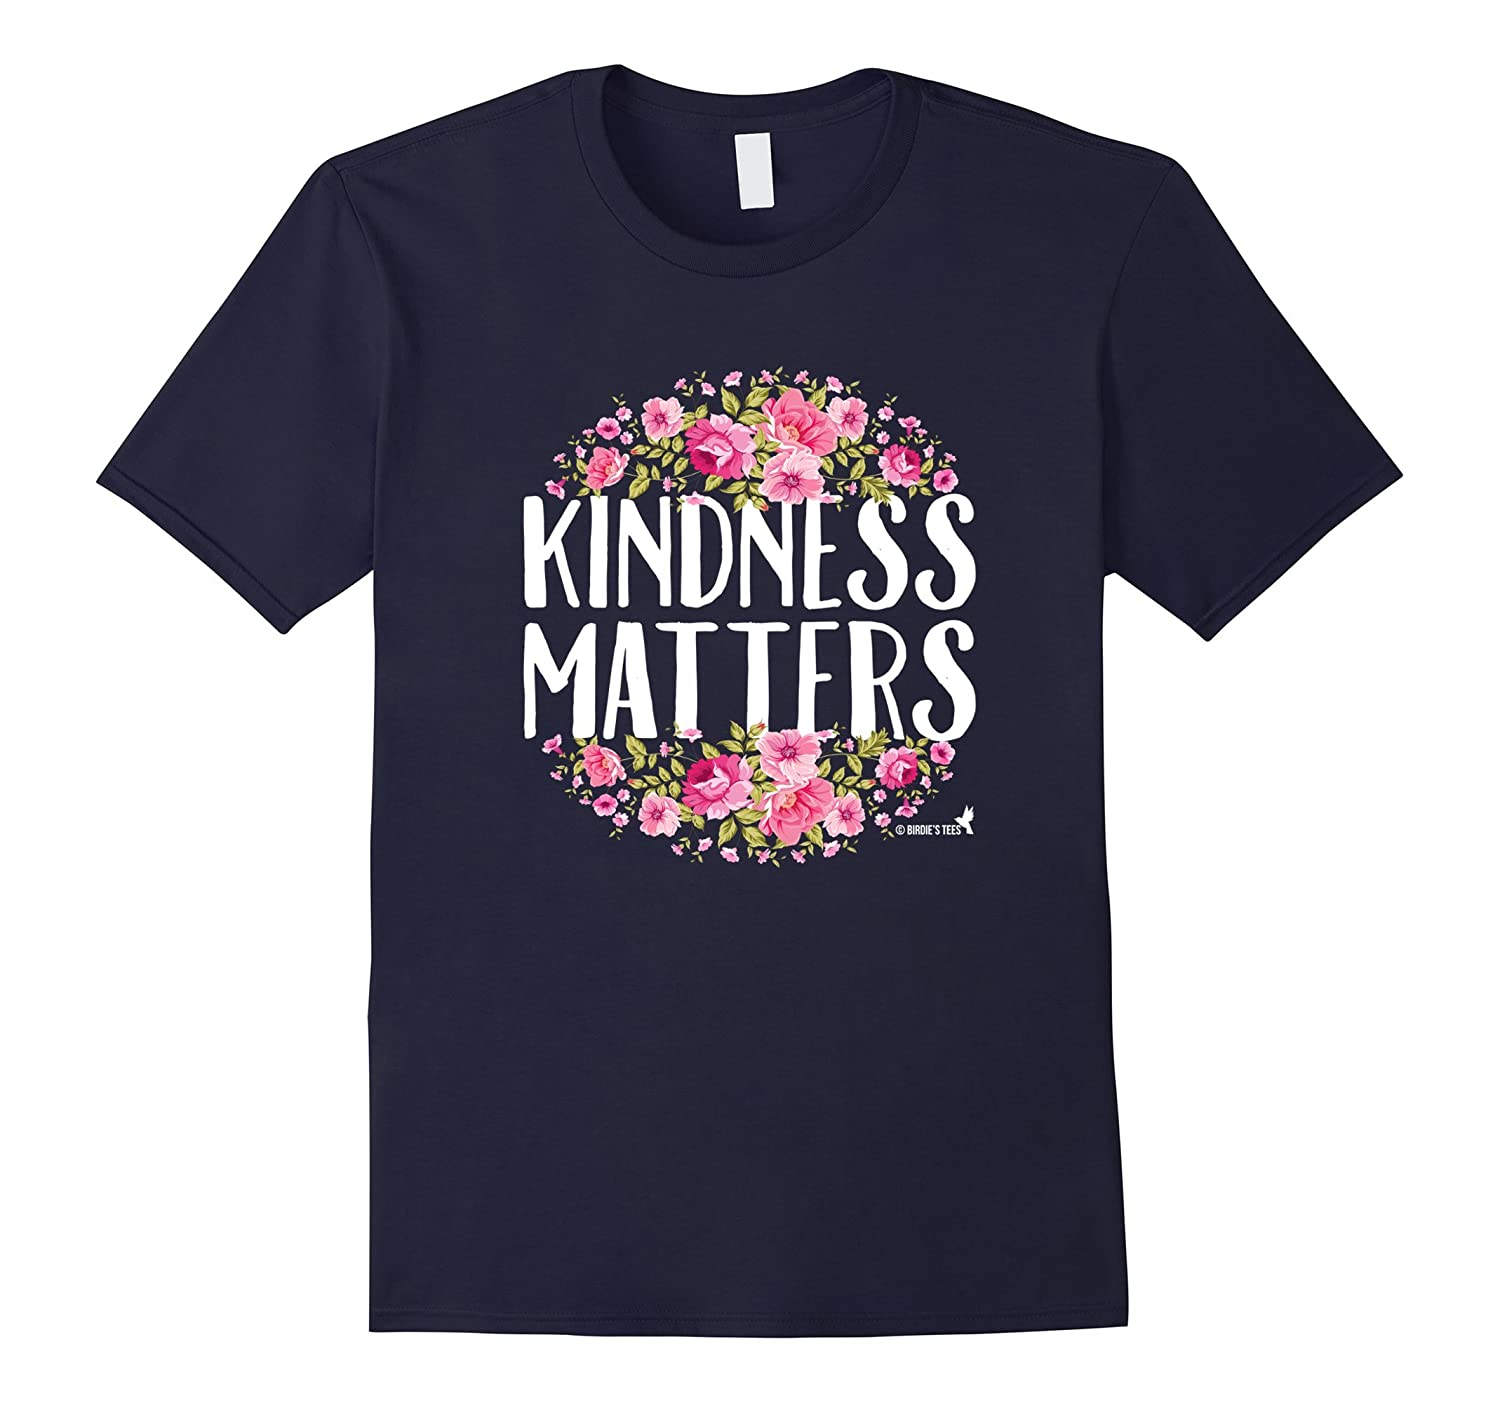 Kindness Matters T-Shirt for Love Unity Compassion-TH